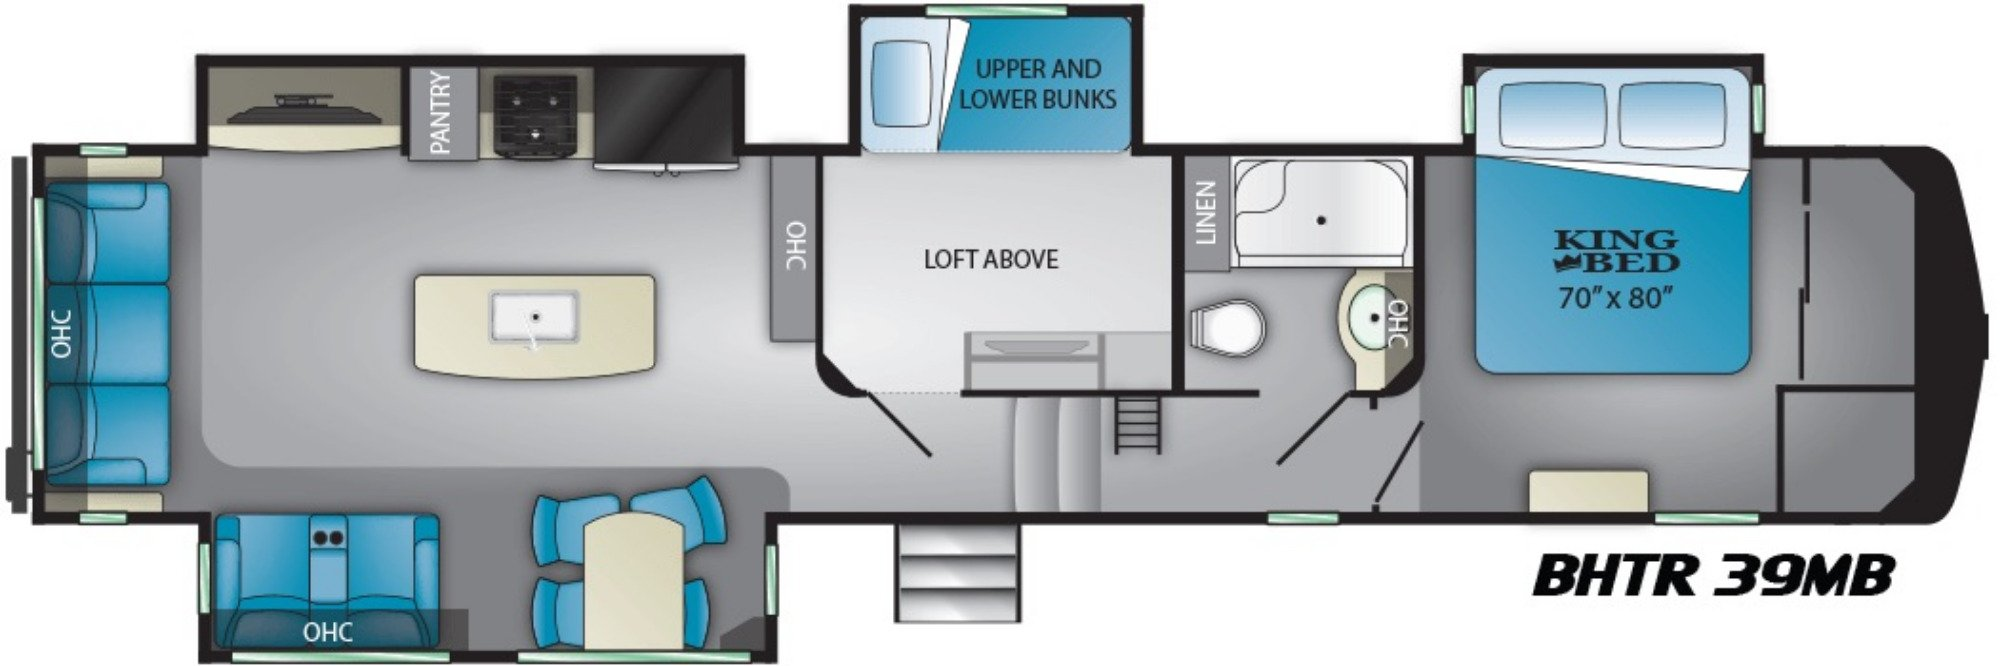 View Floor Plan for 2021 HEARTLAND BIGHORN TRAVELER 39MB